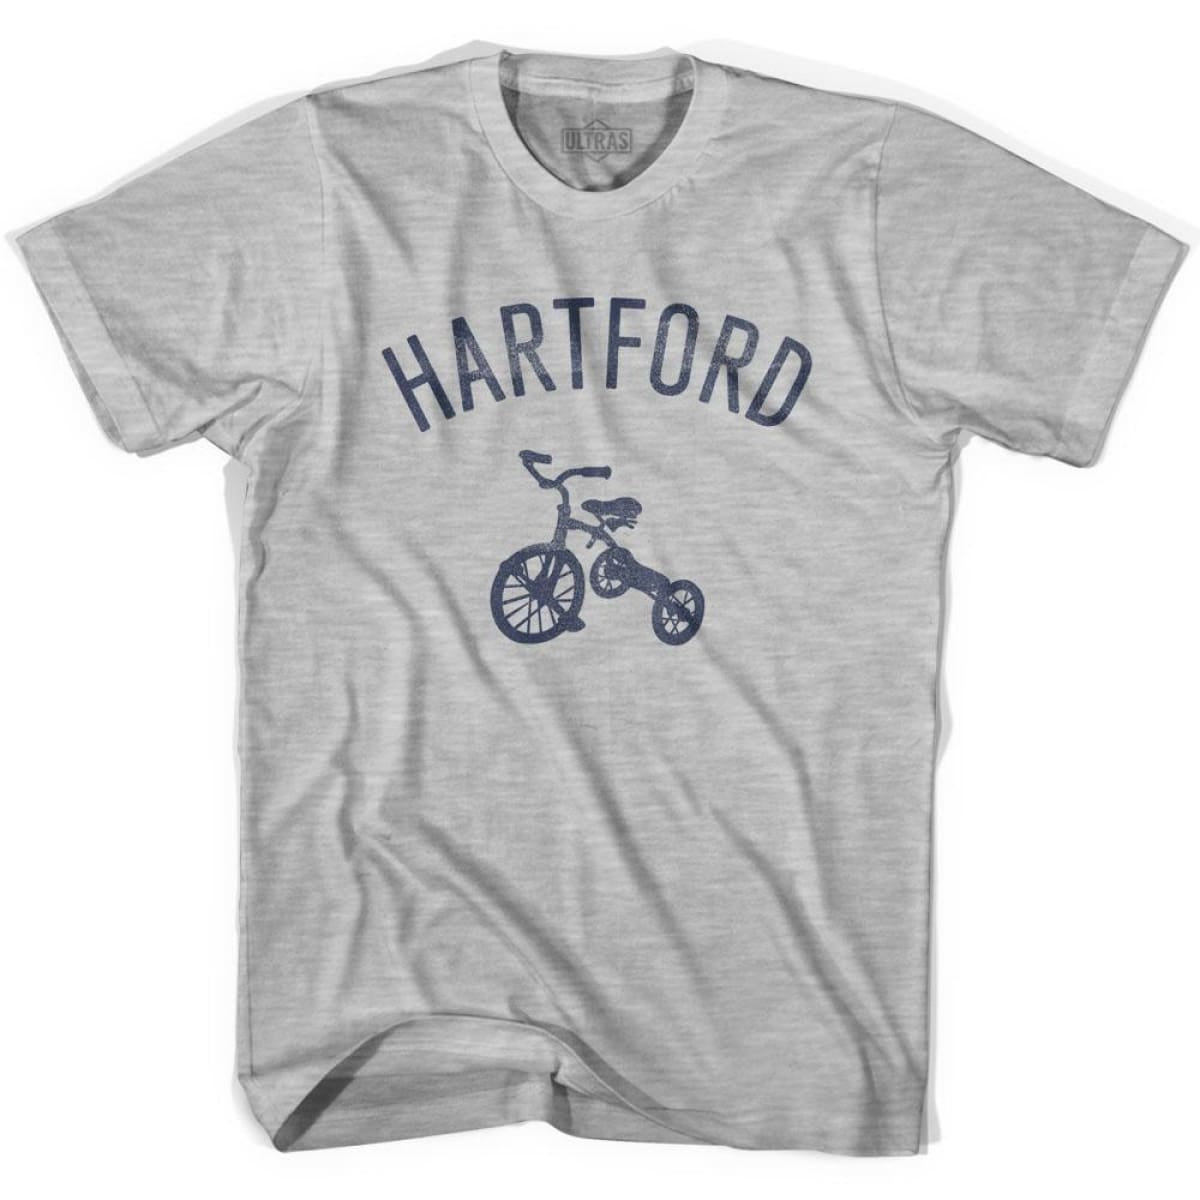 Hartford City Tricycle Youth Cotton T-shirt - Tricycle City